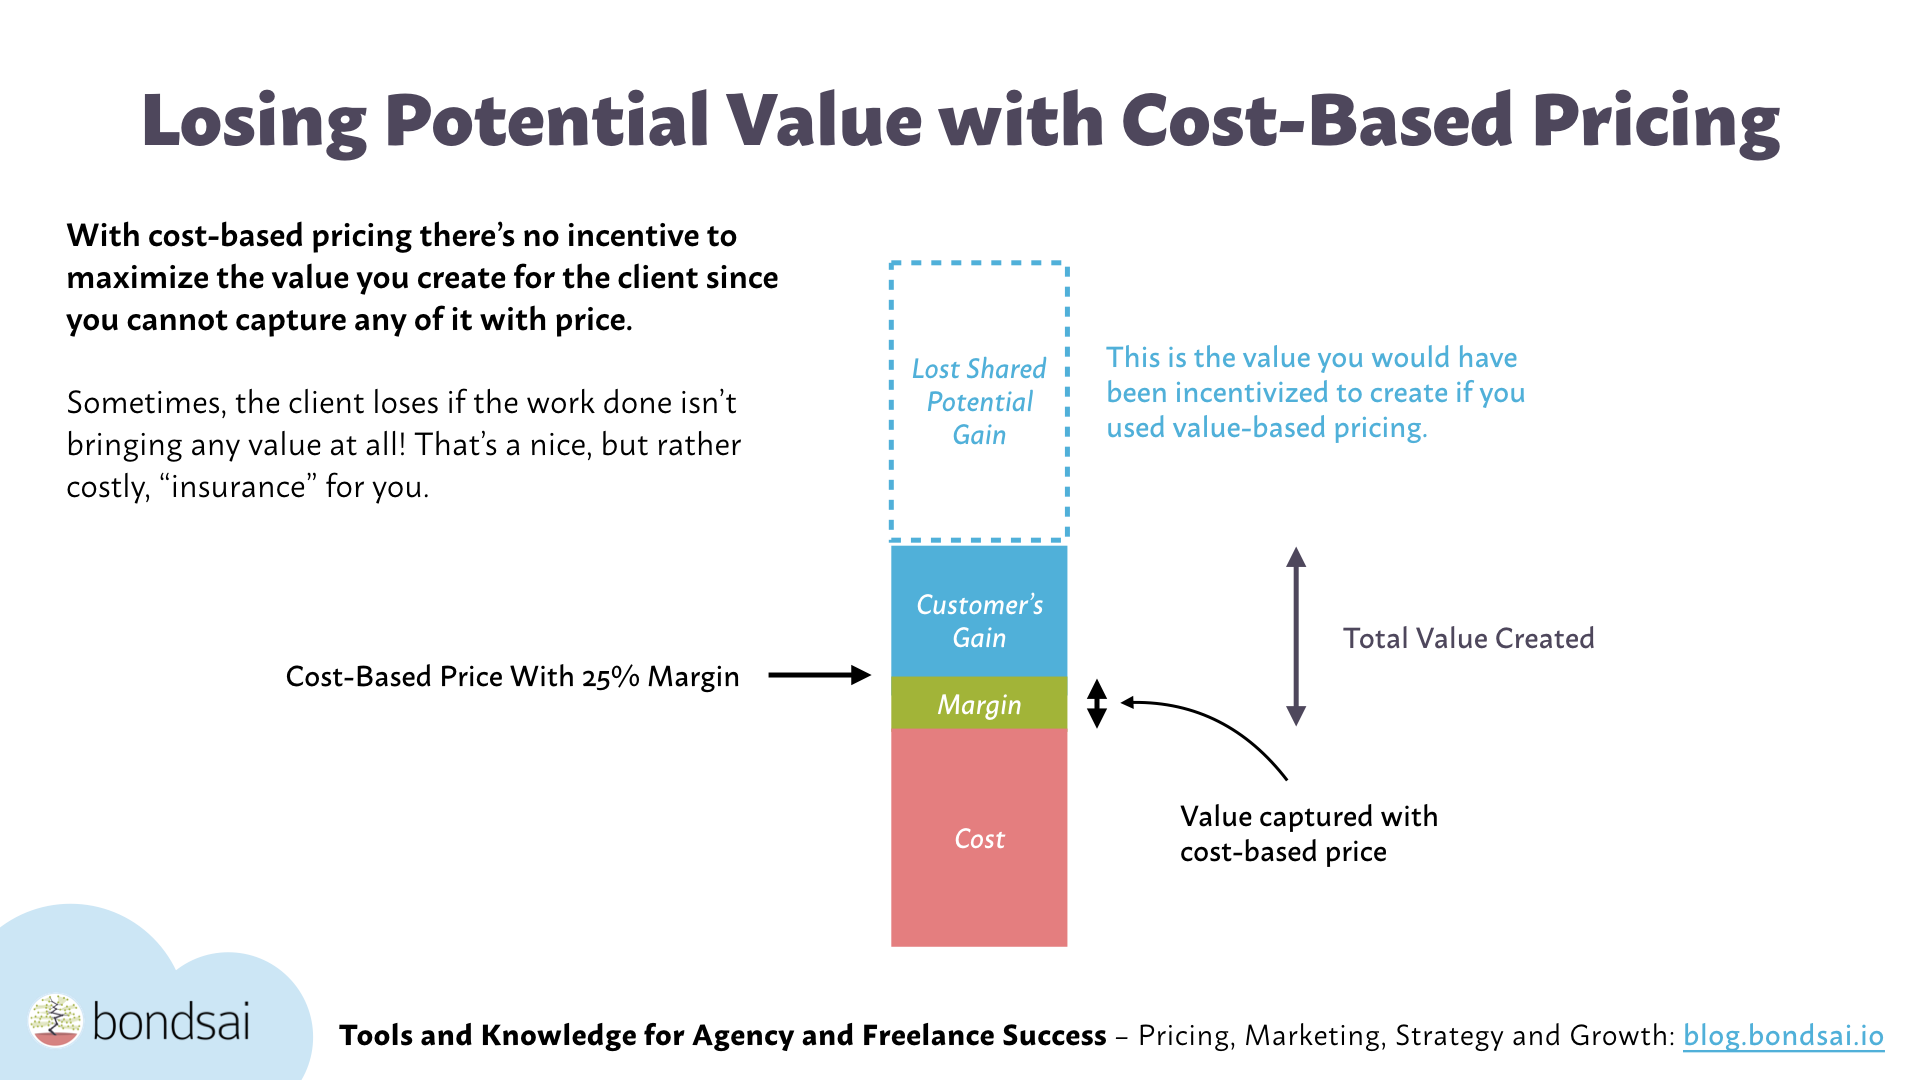 Losing potential value with cost-based pricing